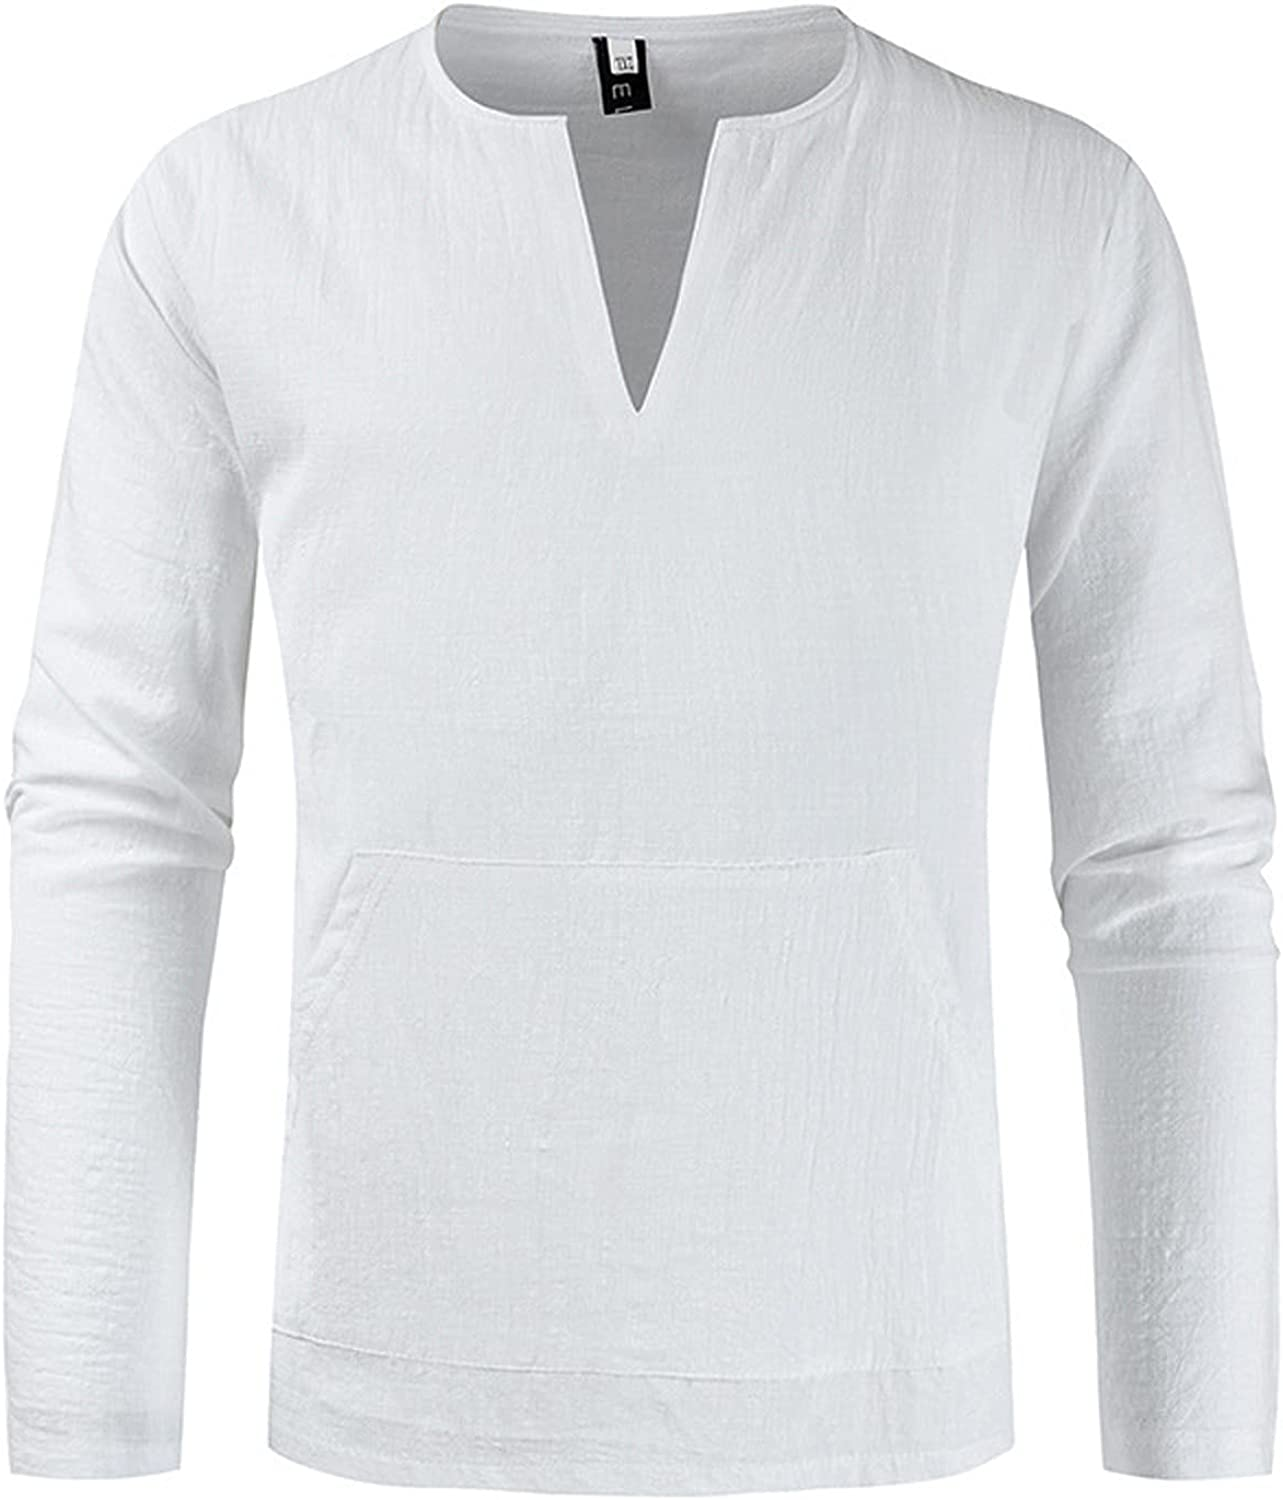 V-Neck Shirts for Mens Long Sleeve Slim Fit Cotton Linen Casual Beach Breathable Fashion Summer Solid Top